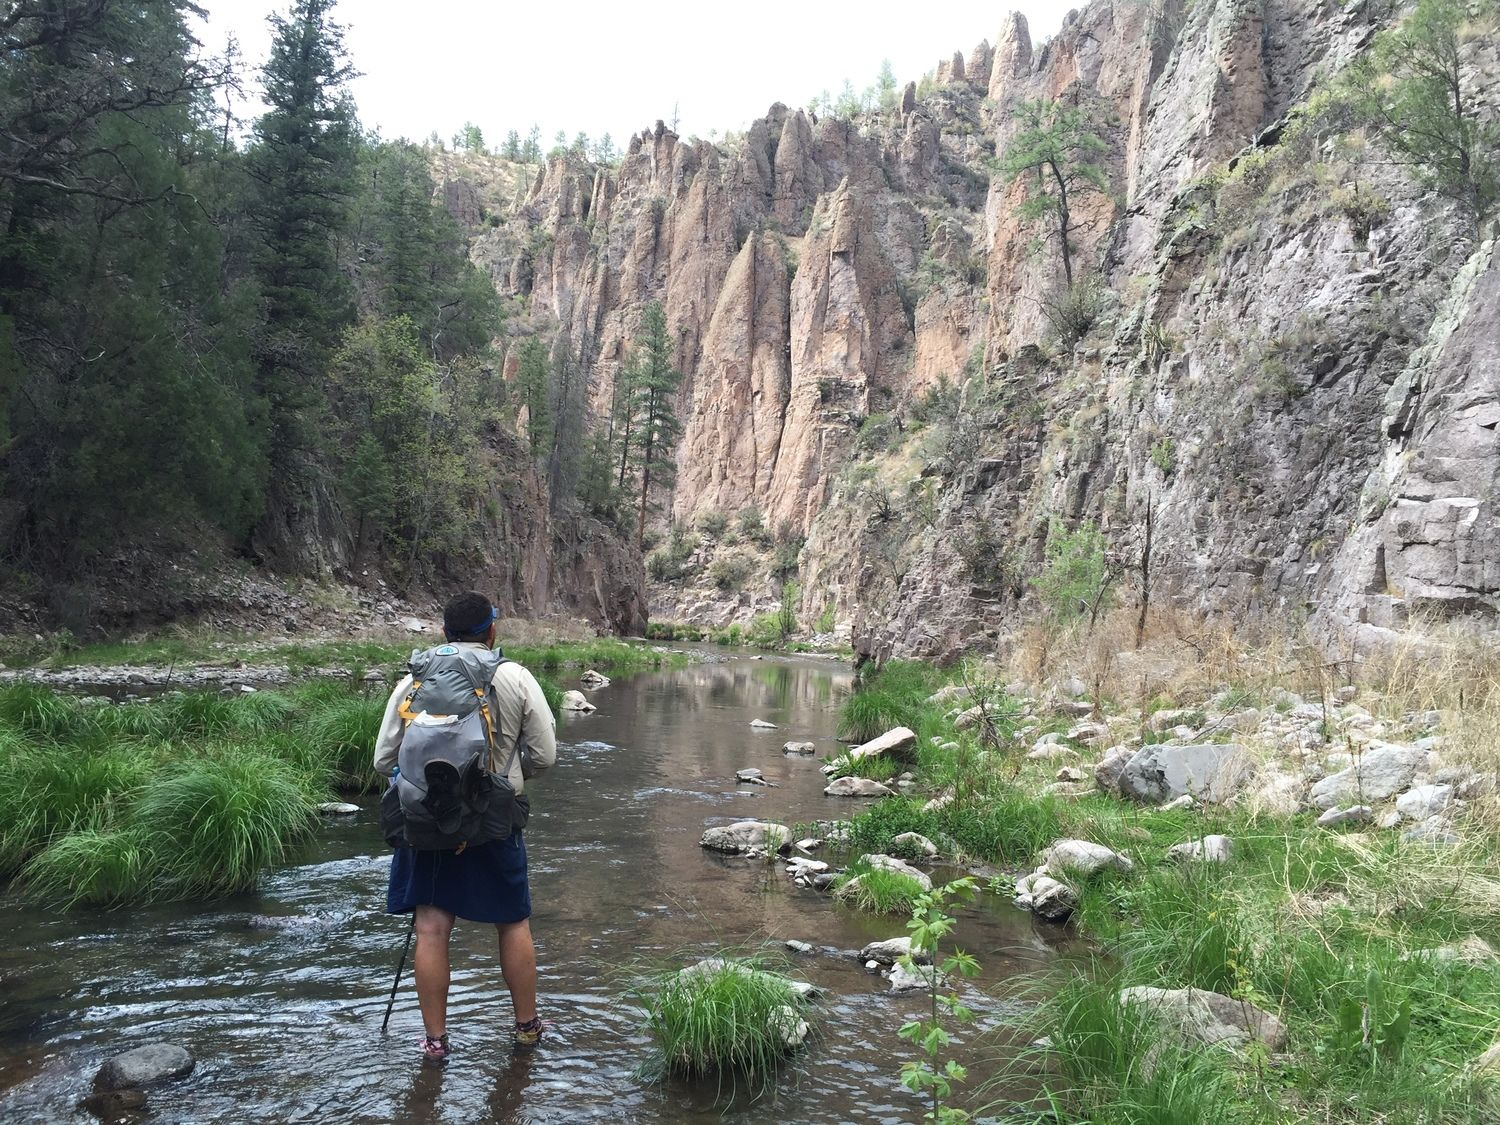 A hiker with trekking poles crossing a stream in a canyon.